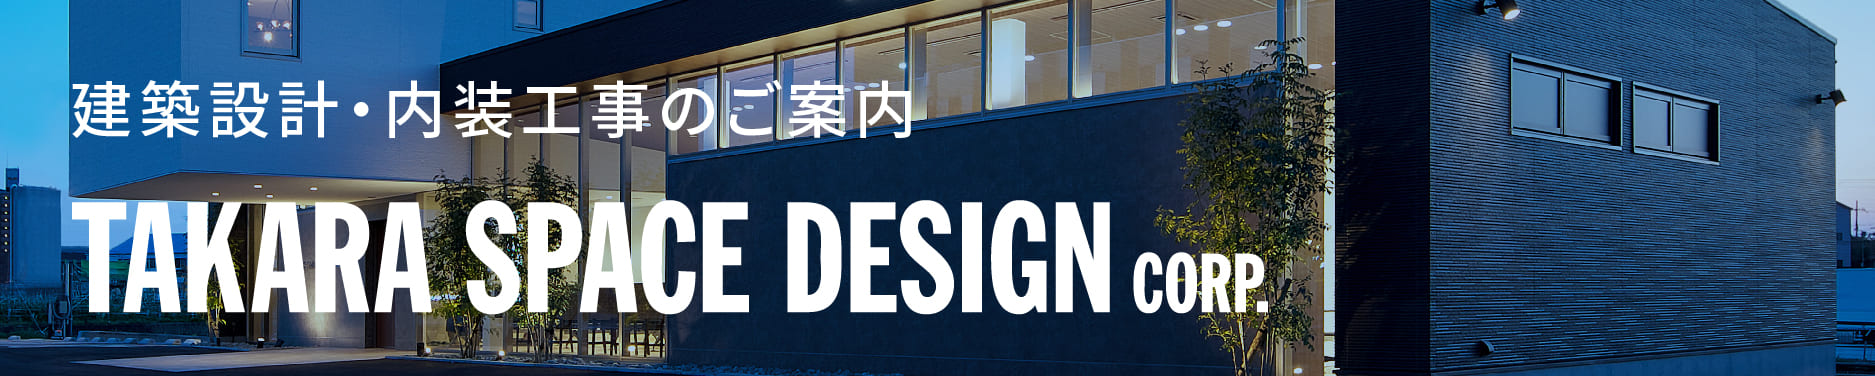 TAKARS SPACE DESIGN 建築設計・内装工事のご案内